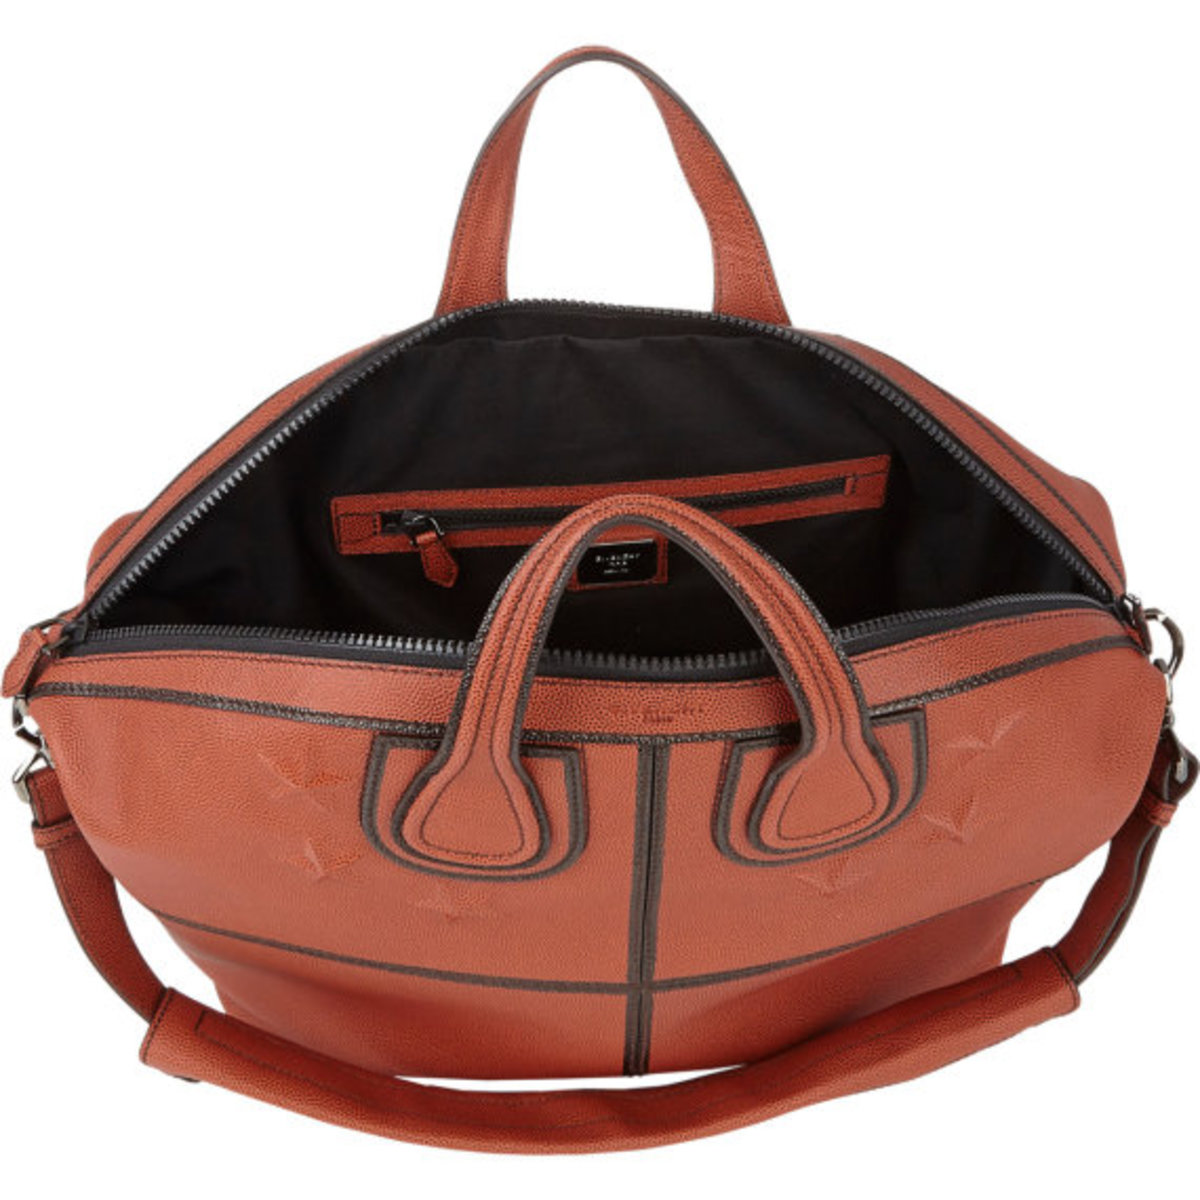 GIVENCHY - Star-Studded Nightingale Tote in Basketball Leather - 4